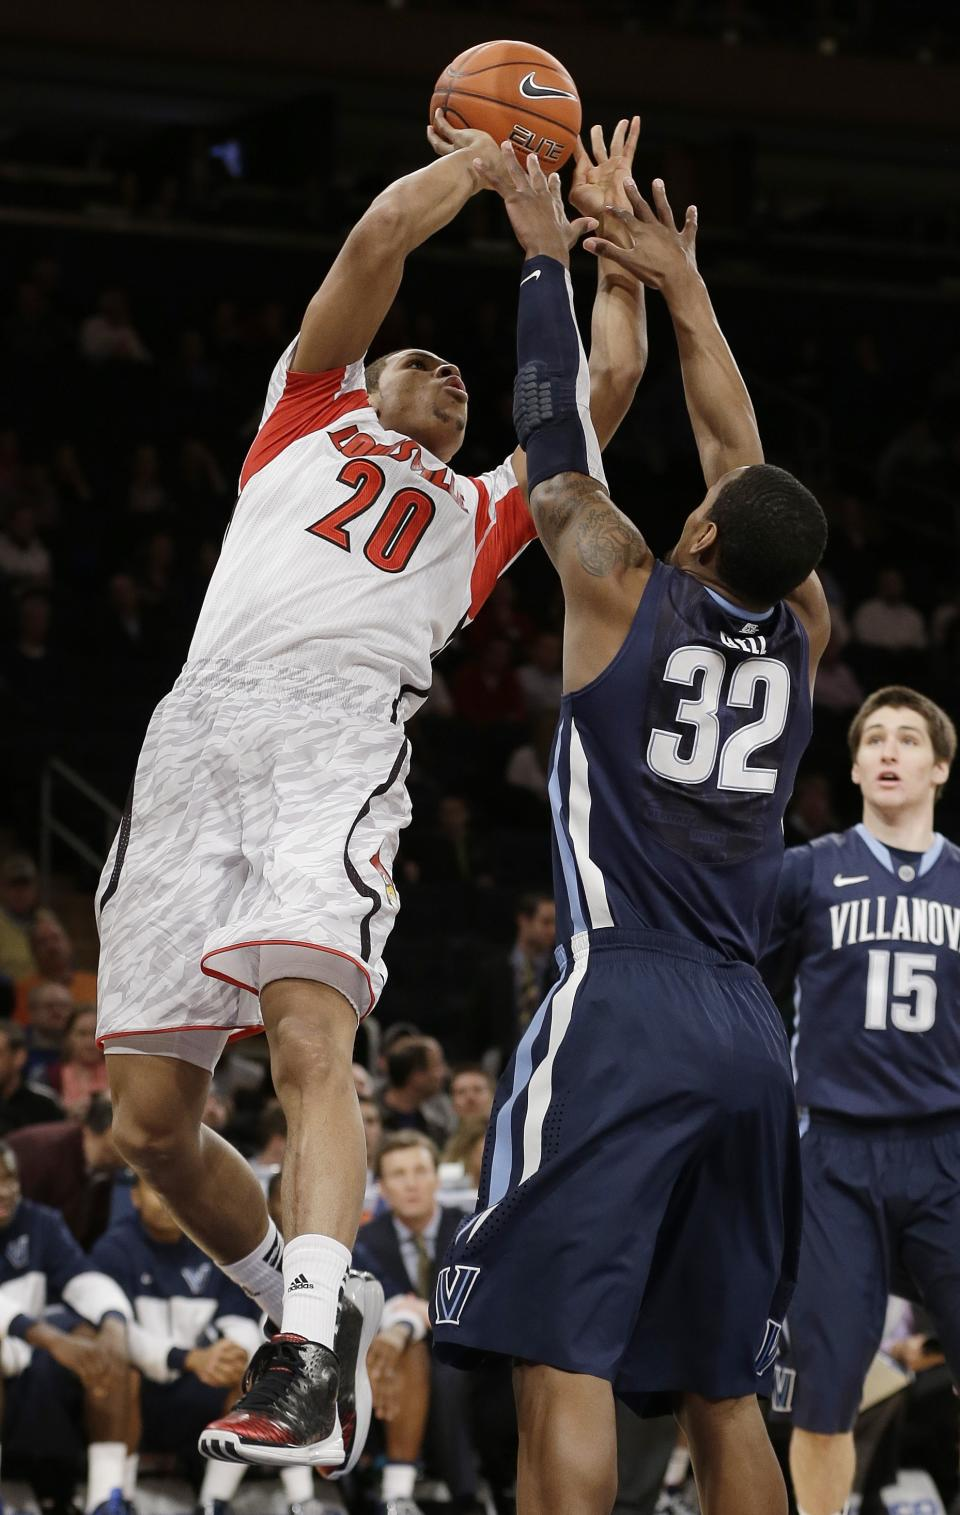 Louisville's Wayne Blackshear (20) shoots over Villanova's James Bell (32) during the first half of an NCAA college basketball game at the Big East Conference tournament, Thursday, March 14, 2013, in New York. (AP Photo/Frank Franklin II)